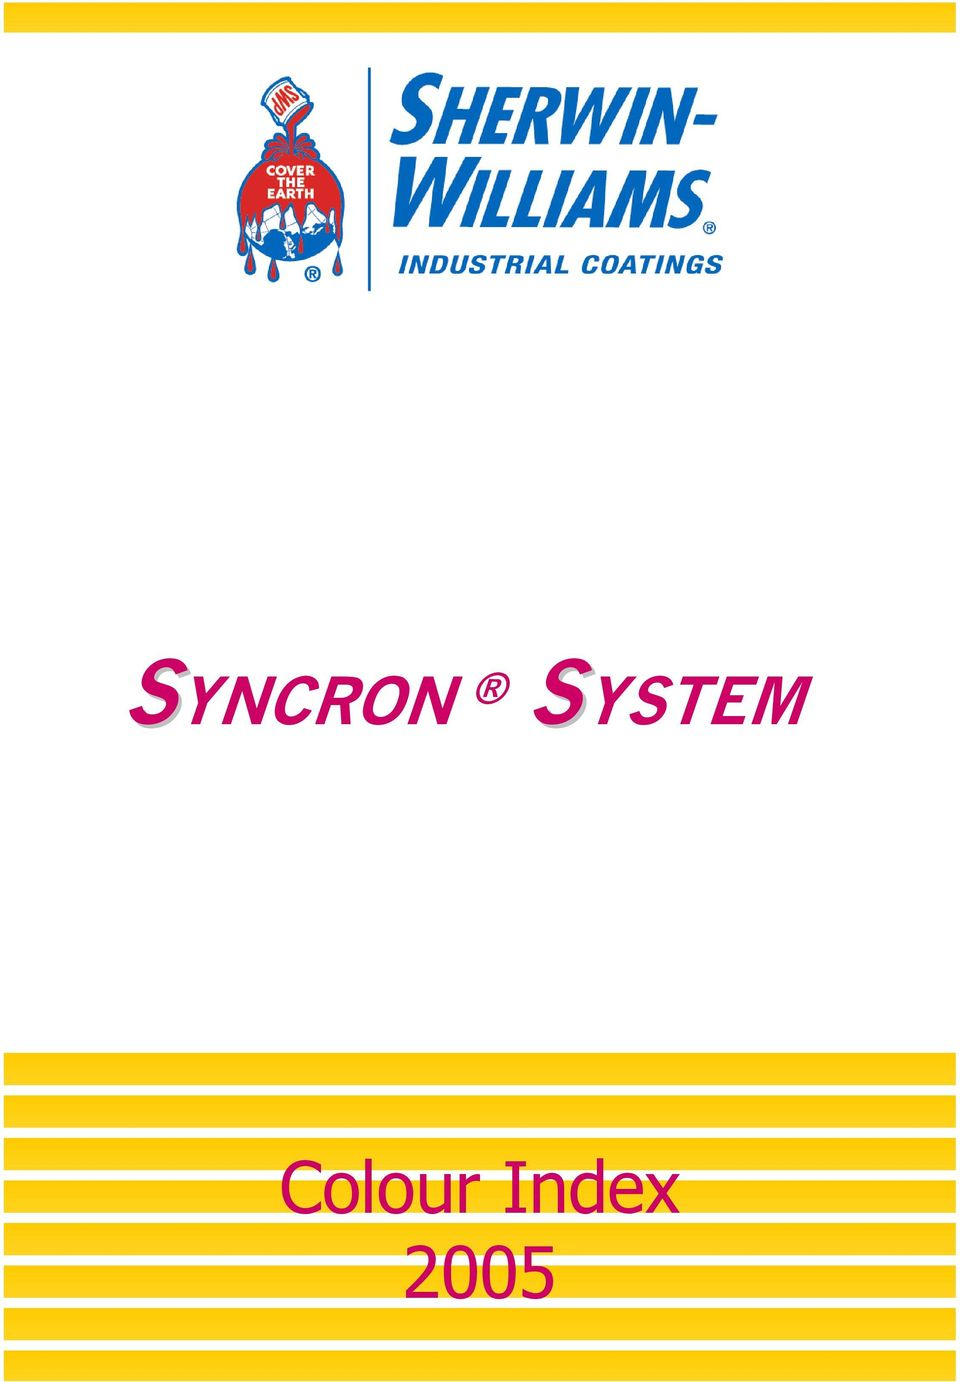 Color Tortora Ral 7044 yncron ystem. colour index pdf free download